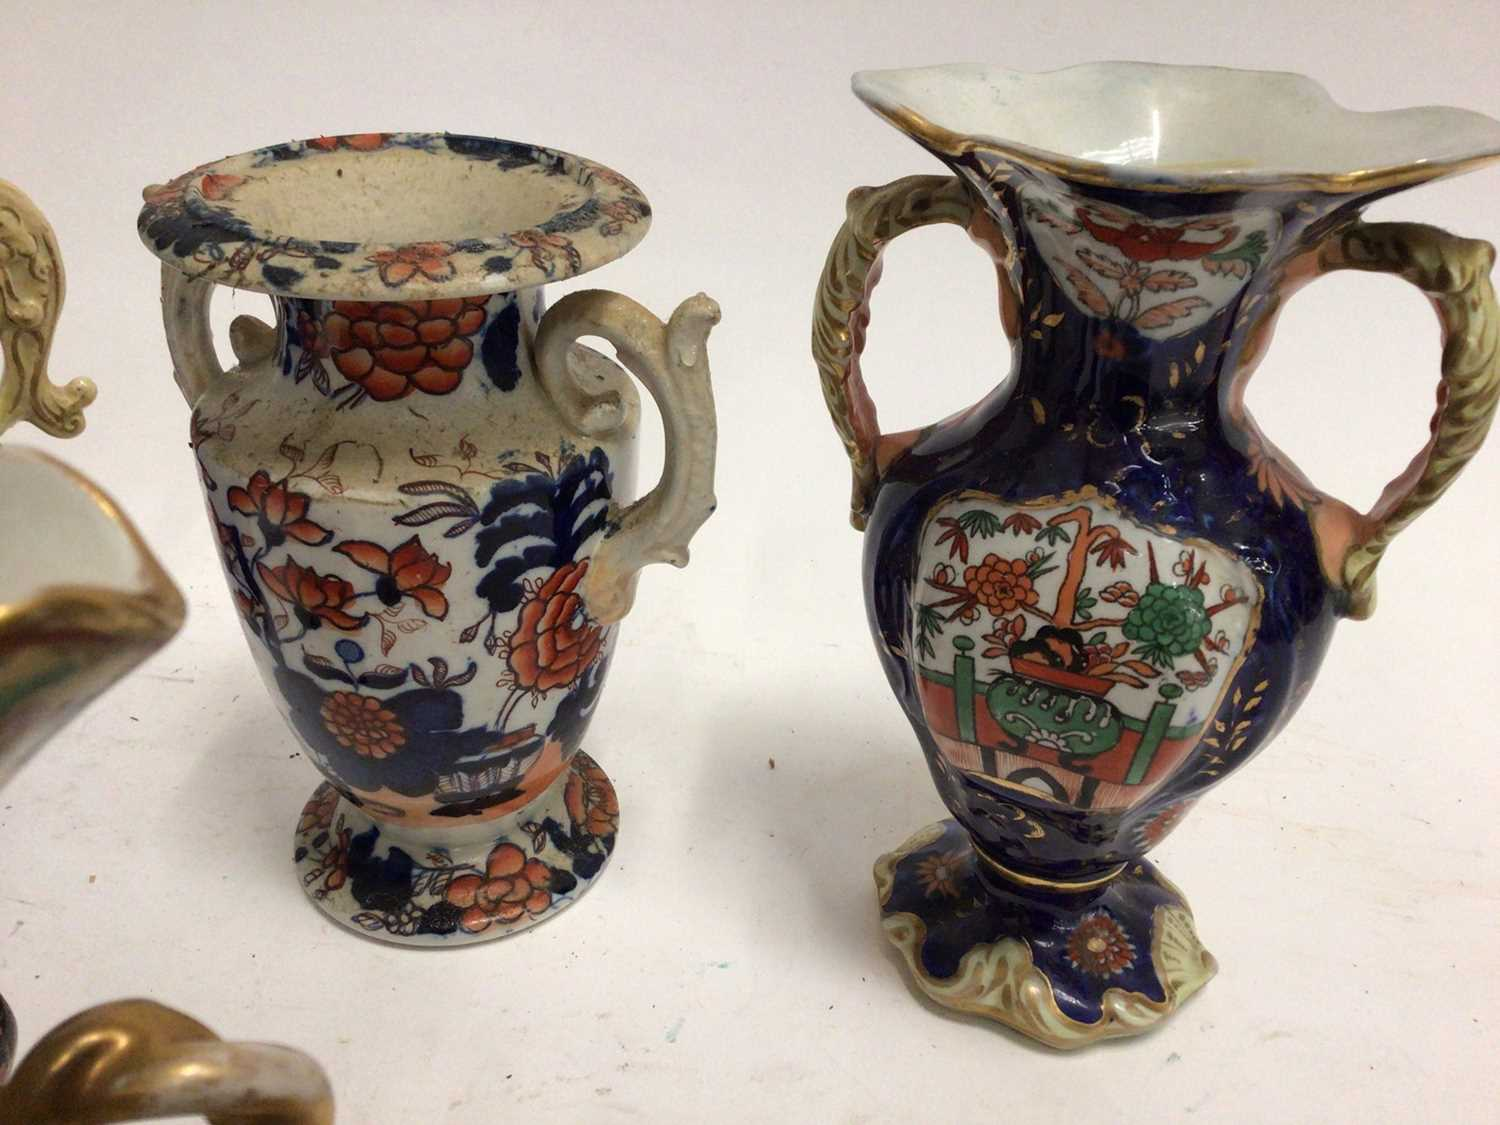 19th century Masons and Masons-style pottery, including four vases and a scent bottle, the largest v - Image 3 of 5